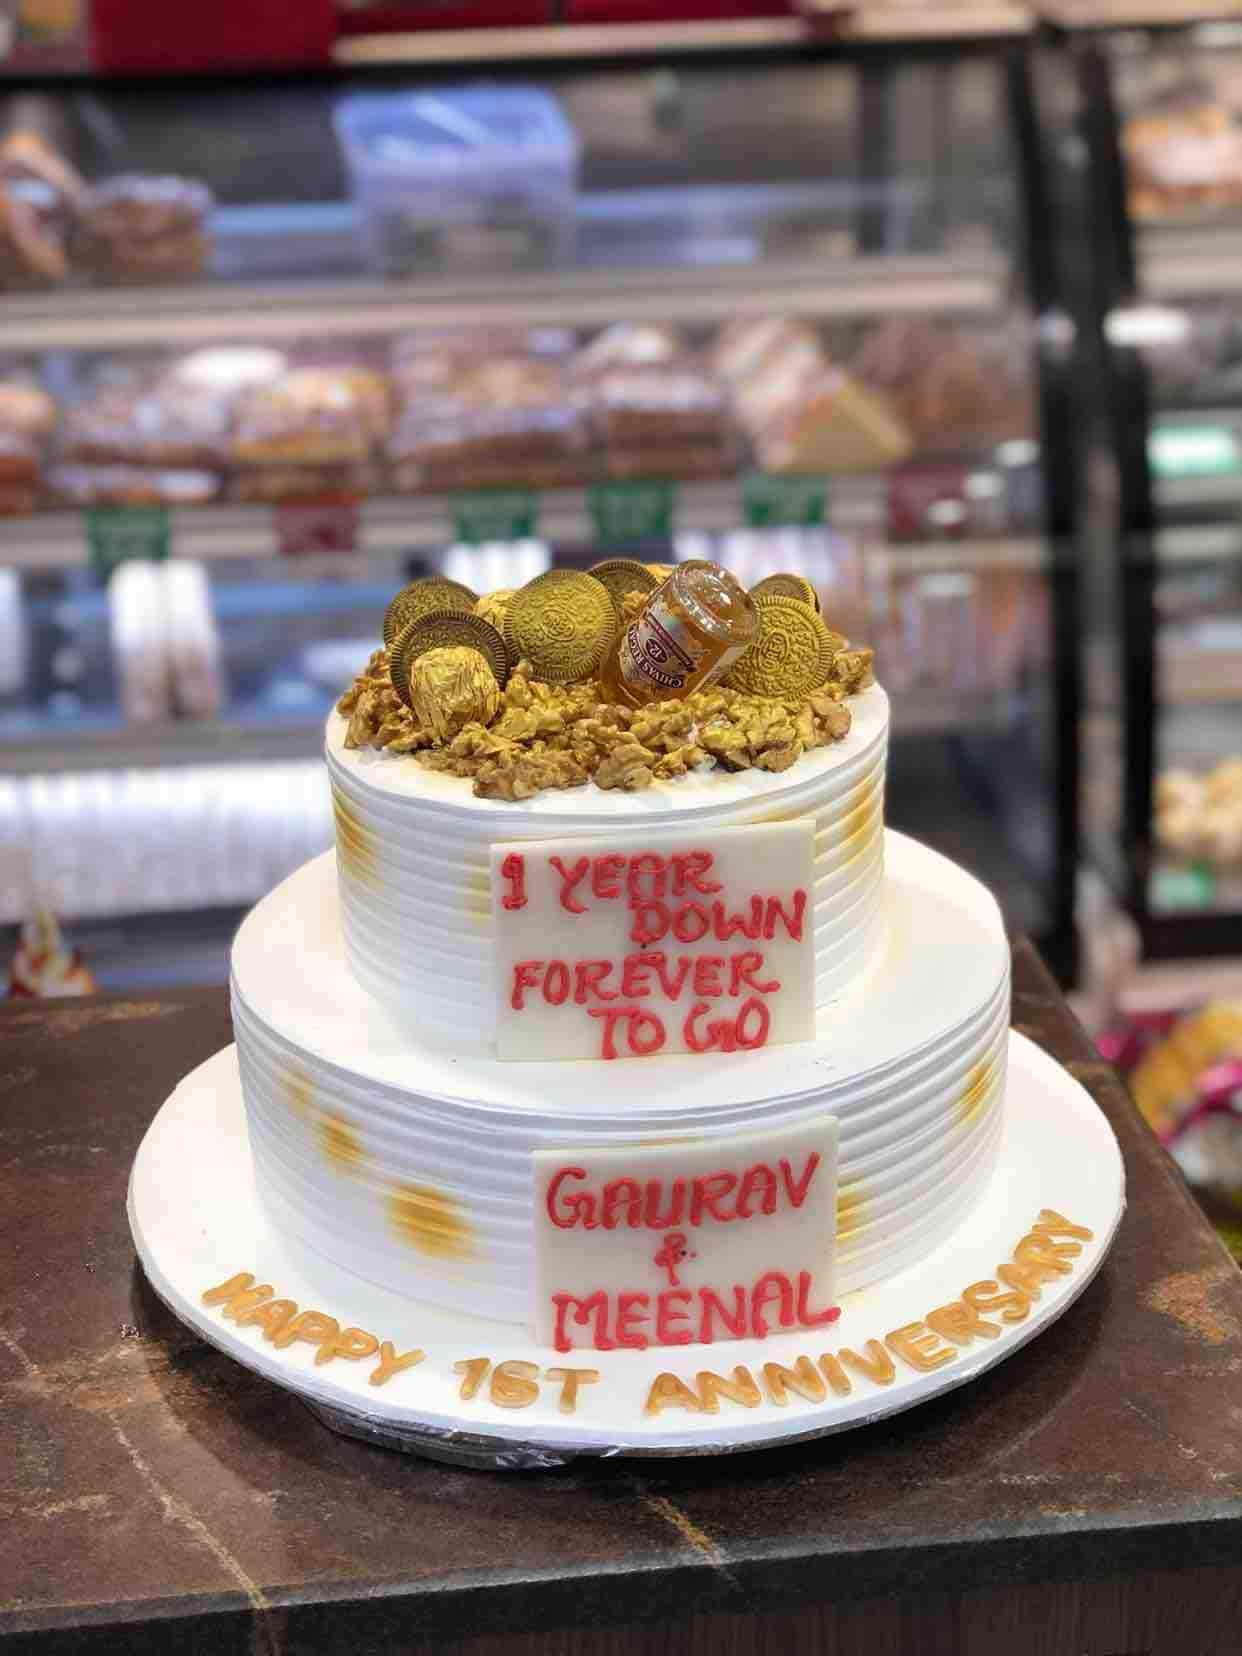 Cake House Model Town Eggless Pastry Retailers In